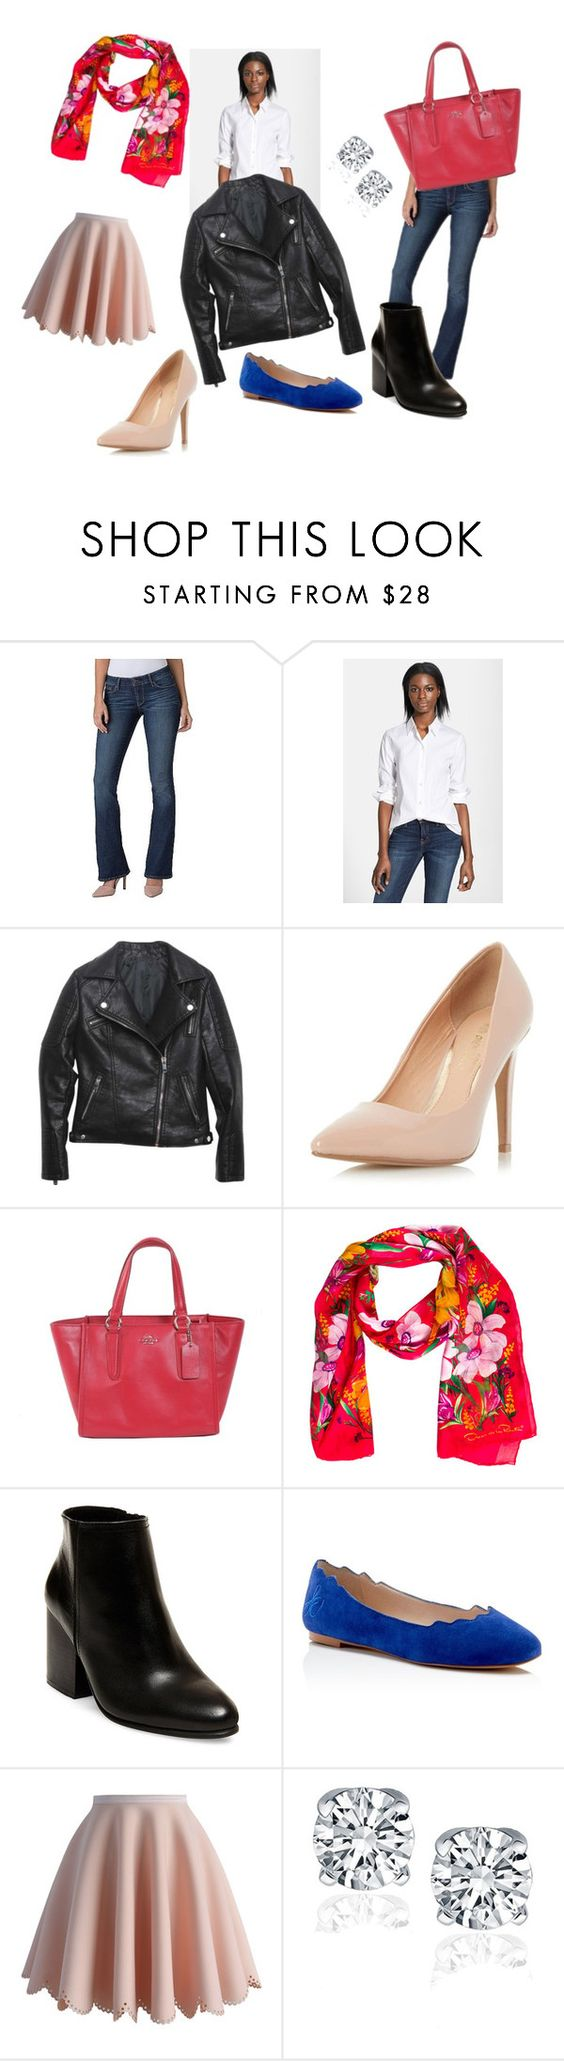 10 Basics for Spring by aejaie on Polyvore featuring Theory, Relaxfeel, Chicwish, dENiZEN, Steve Madden, Dorothy Perkins, Sam Edelman, Coach and Oscar de la Renta: